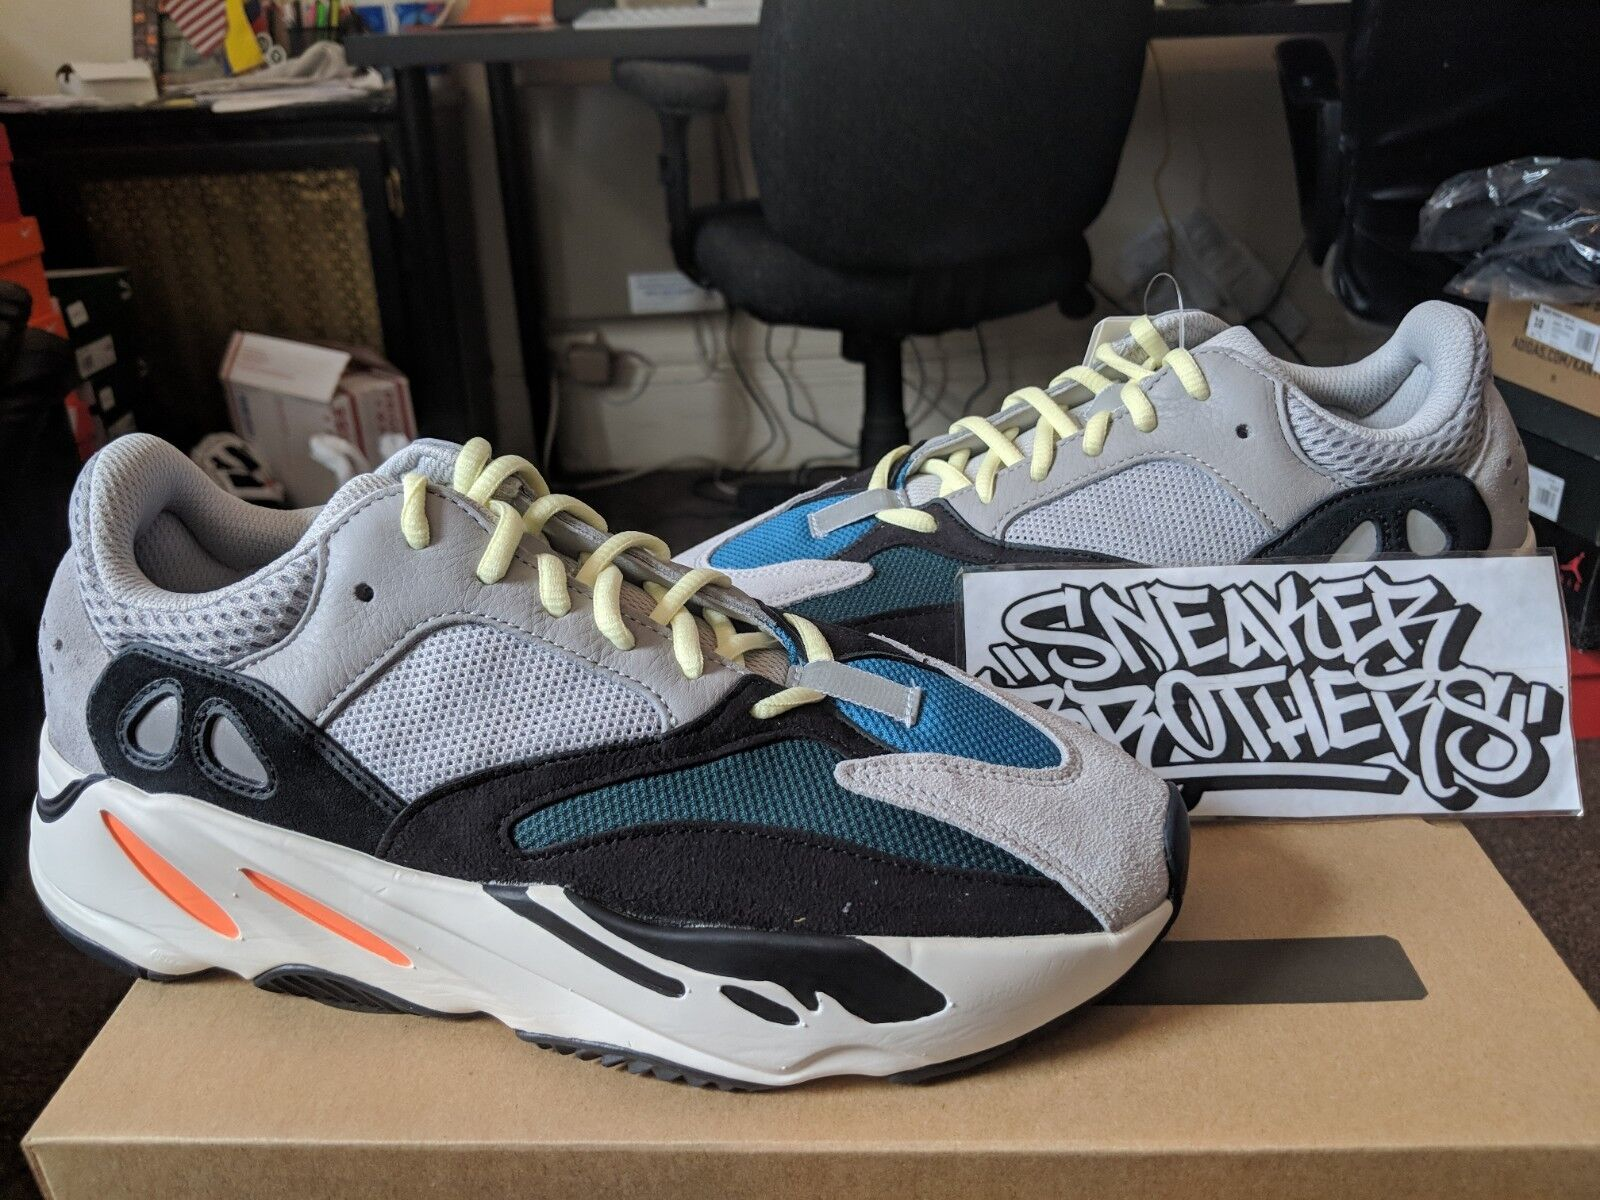 bed88d32ec6 adidas Yeezy Wave Runner 700 B75571 Size 9 for sale online